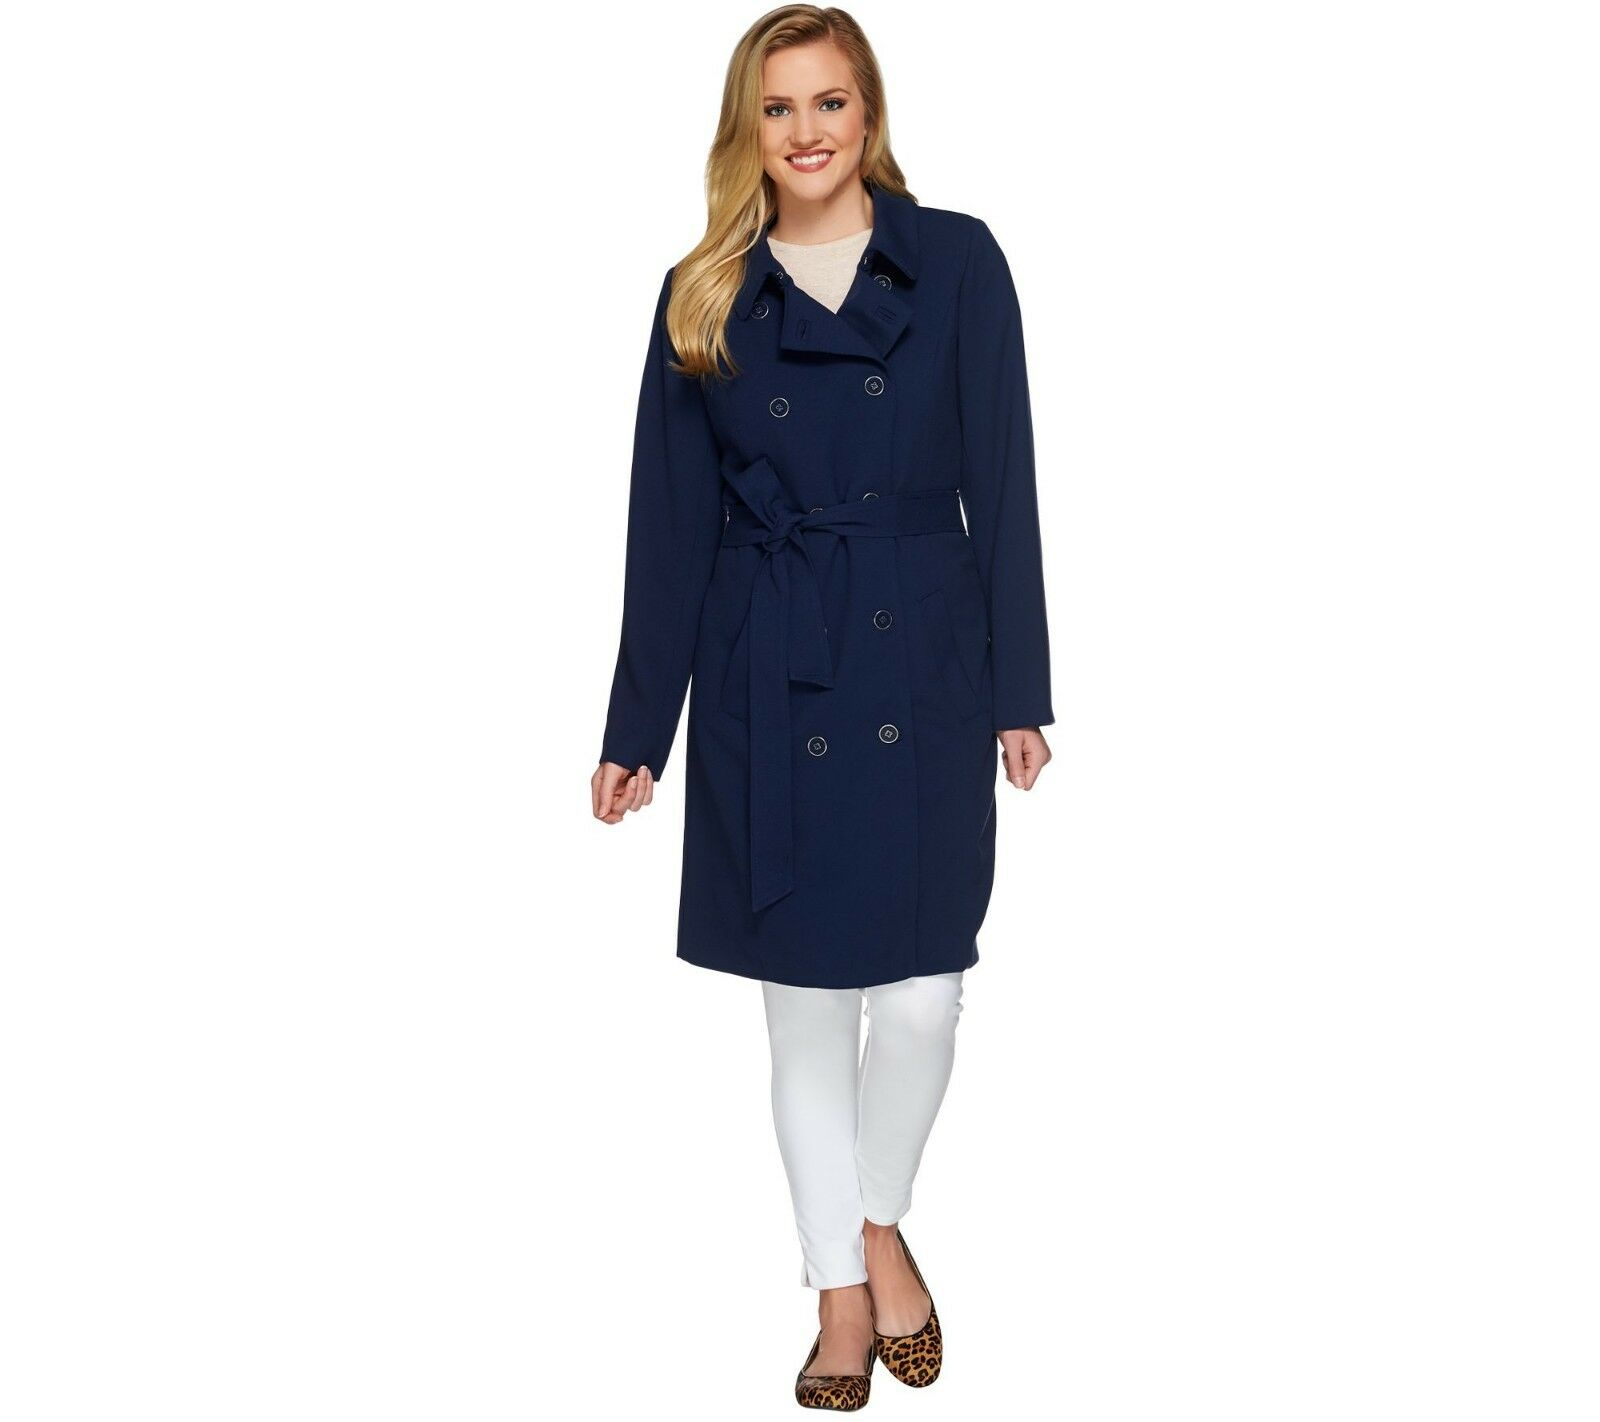 Isaac Mizrahi Women's Water Repellant Soft Trench Coat Dark Navy Size 14 QVC